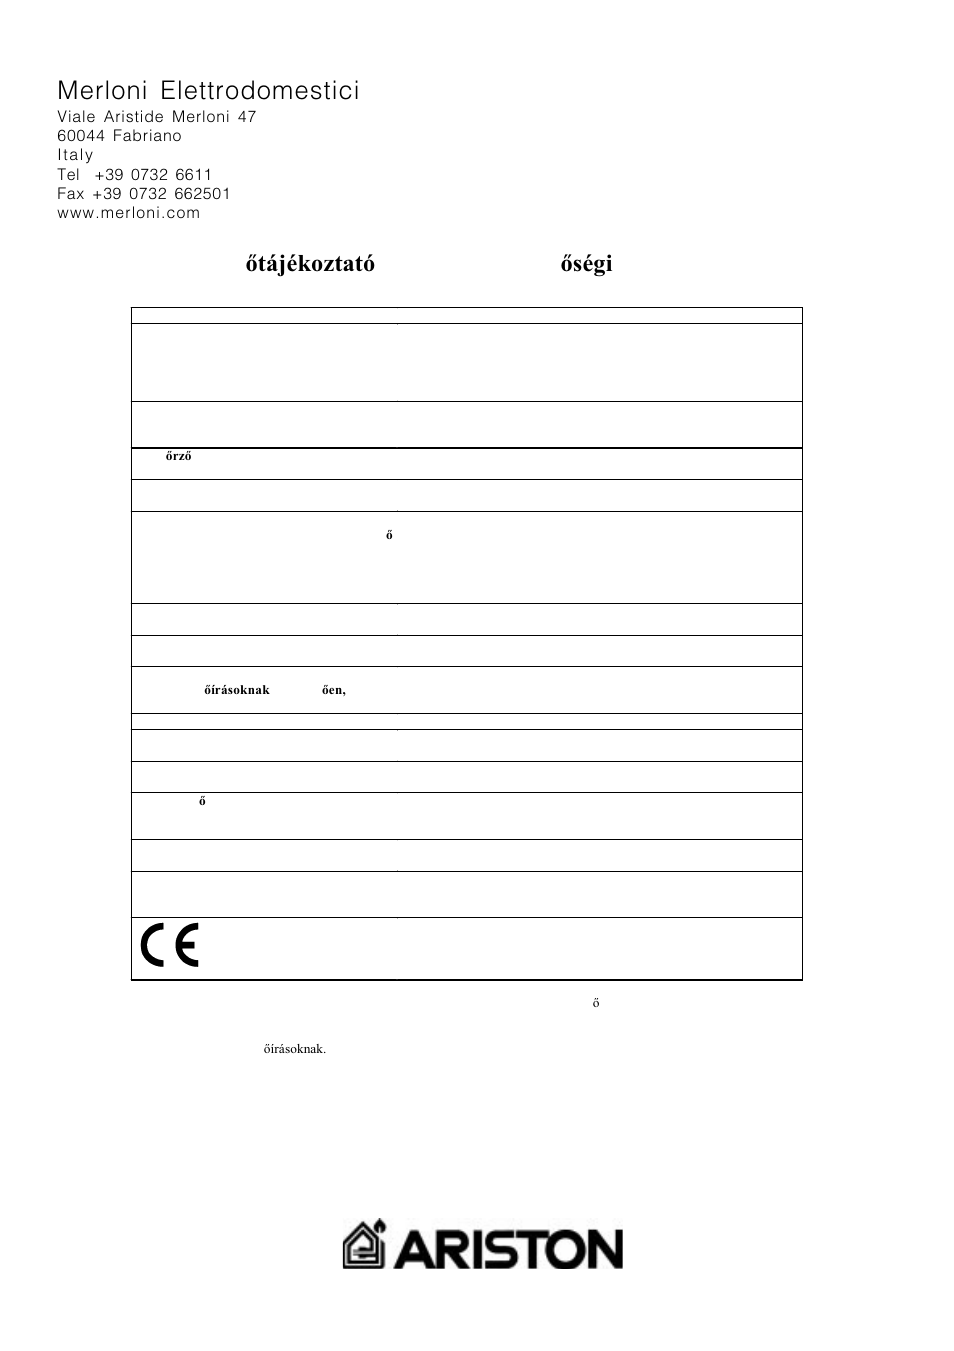 http://www.manualsdir.com/manuals/13790/64/ariston-at-84-page64.png